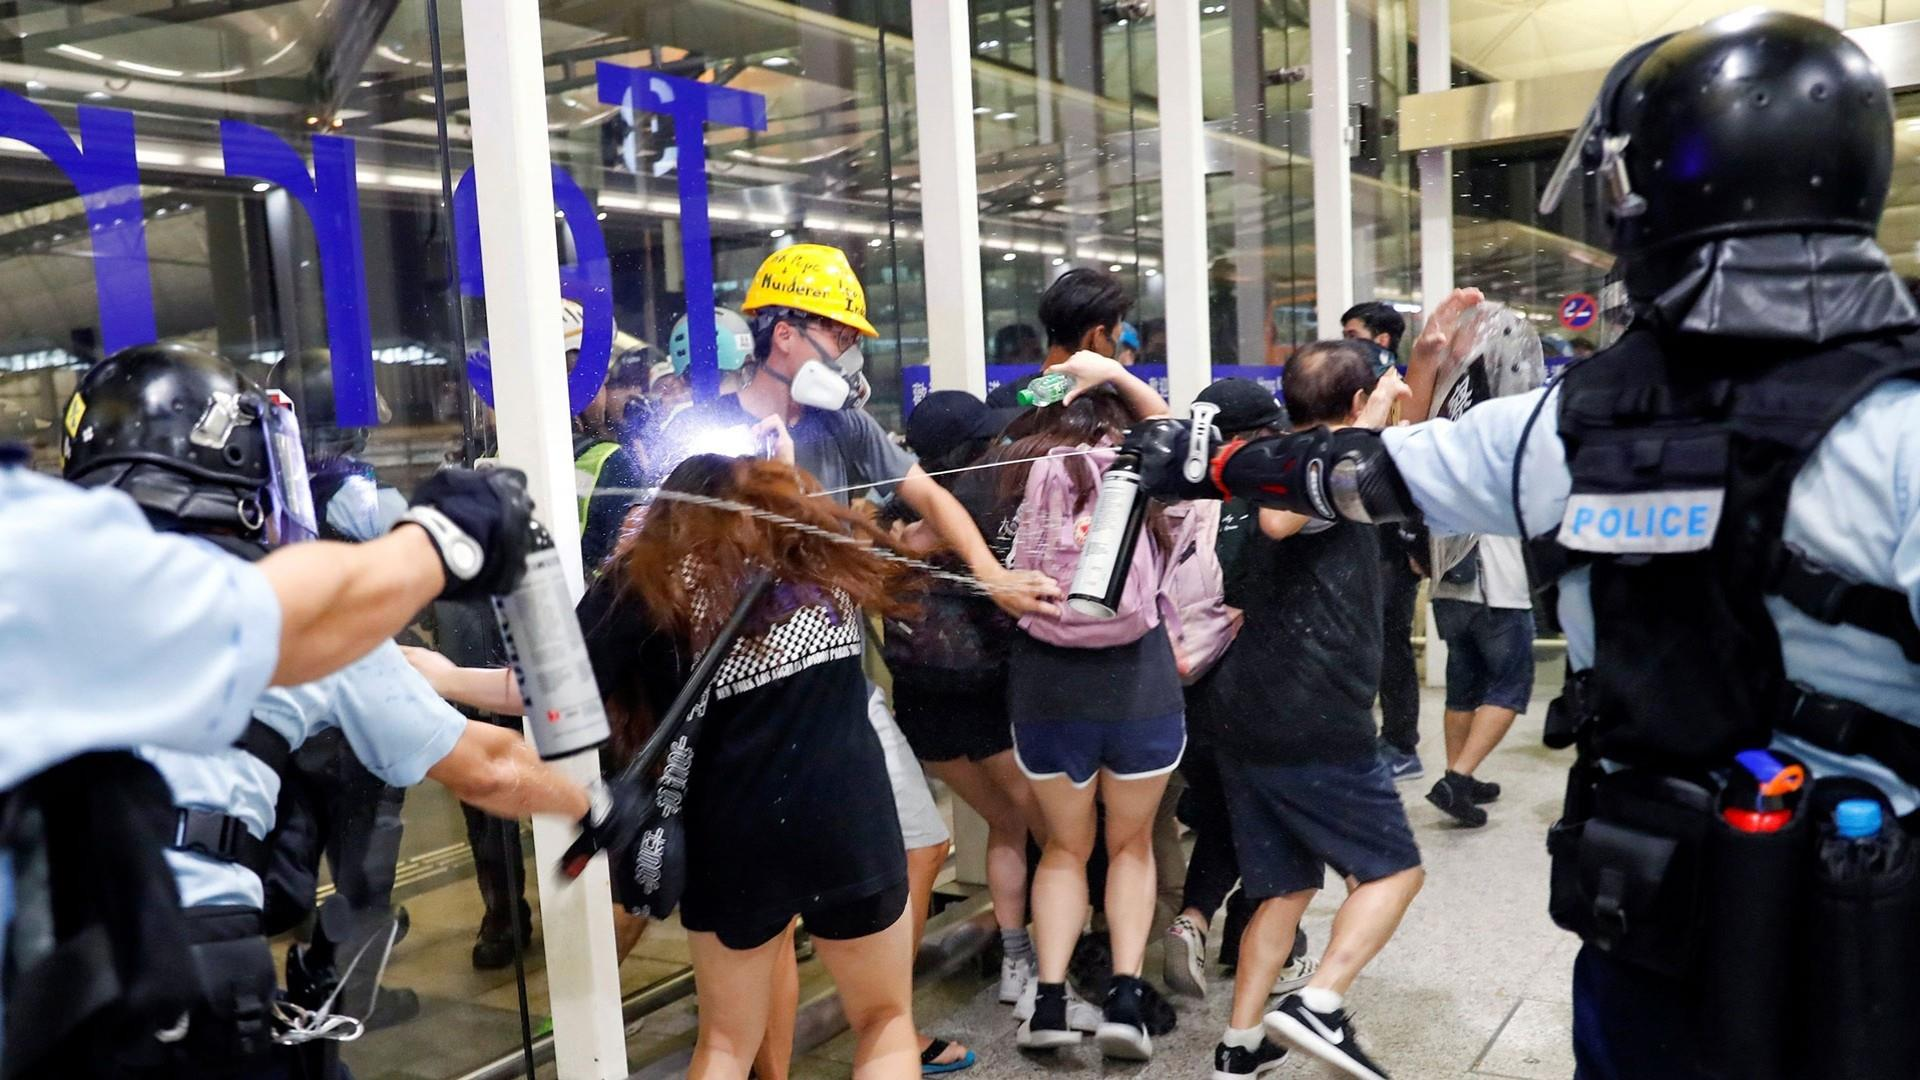 Riot police clash with protesters at Hong Kong airport as demonstrations grow violent